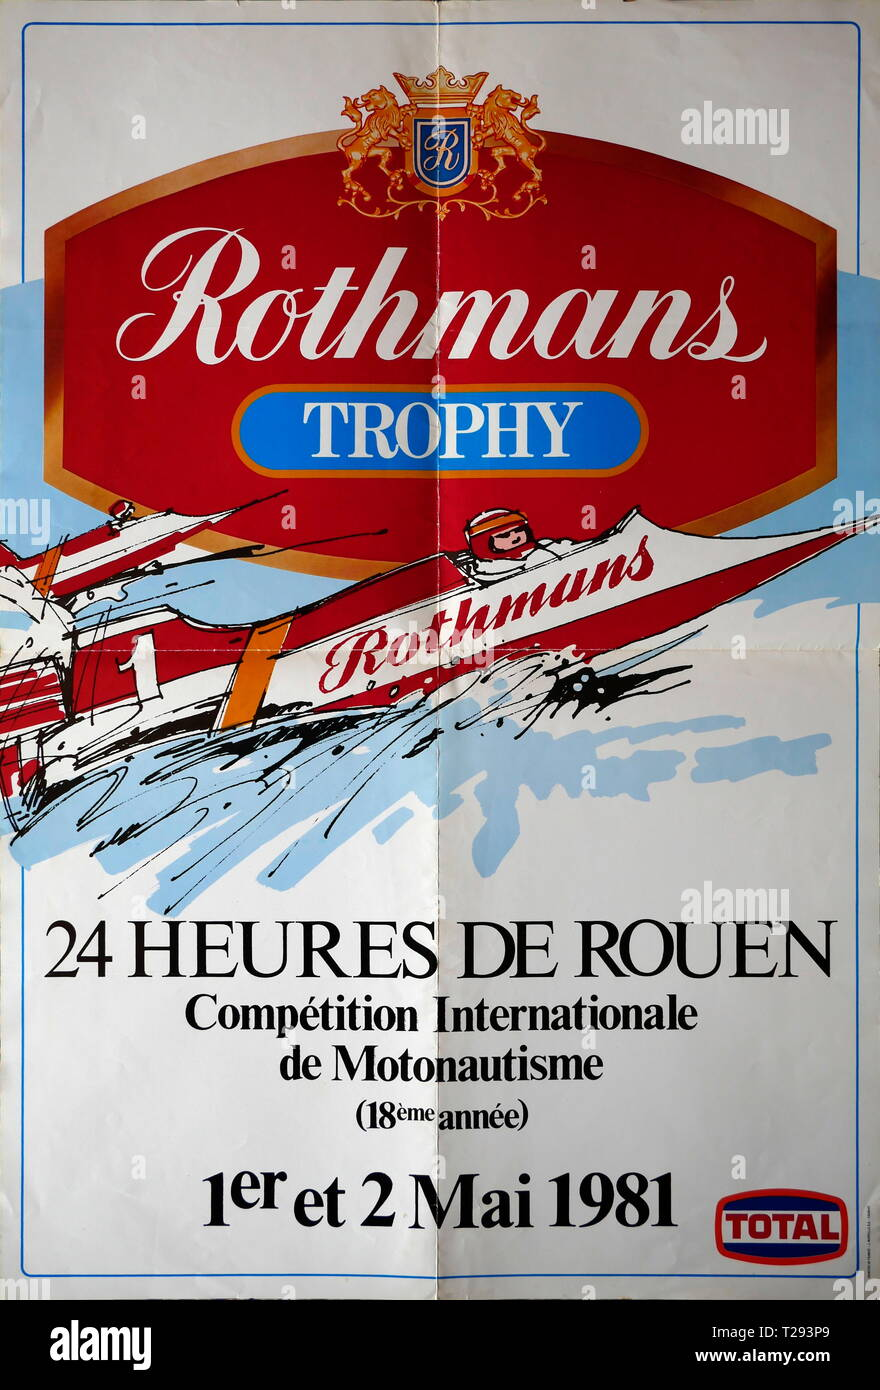 AJAXNETPHOTO. 1981. ROUEN, FRANCE. - RACE POSTER - ROUEN 24HRS INTERNATIONAL POWERBOAT RACE ANNOUNCEMENT FOR THE ROTHMANS TROPHY ON 1ST & 2ND MAY 1981 ON THE RIVER SEINE. PHOTO:©JONATHAN EASTLAND/AJAX REF:GX8_171608_243 - Stock Image